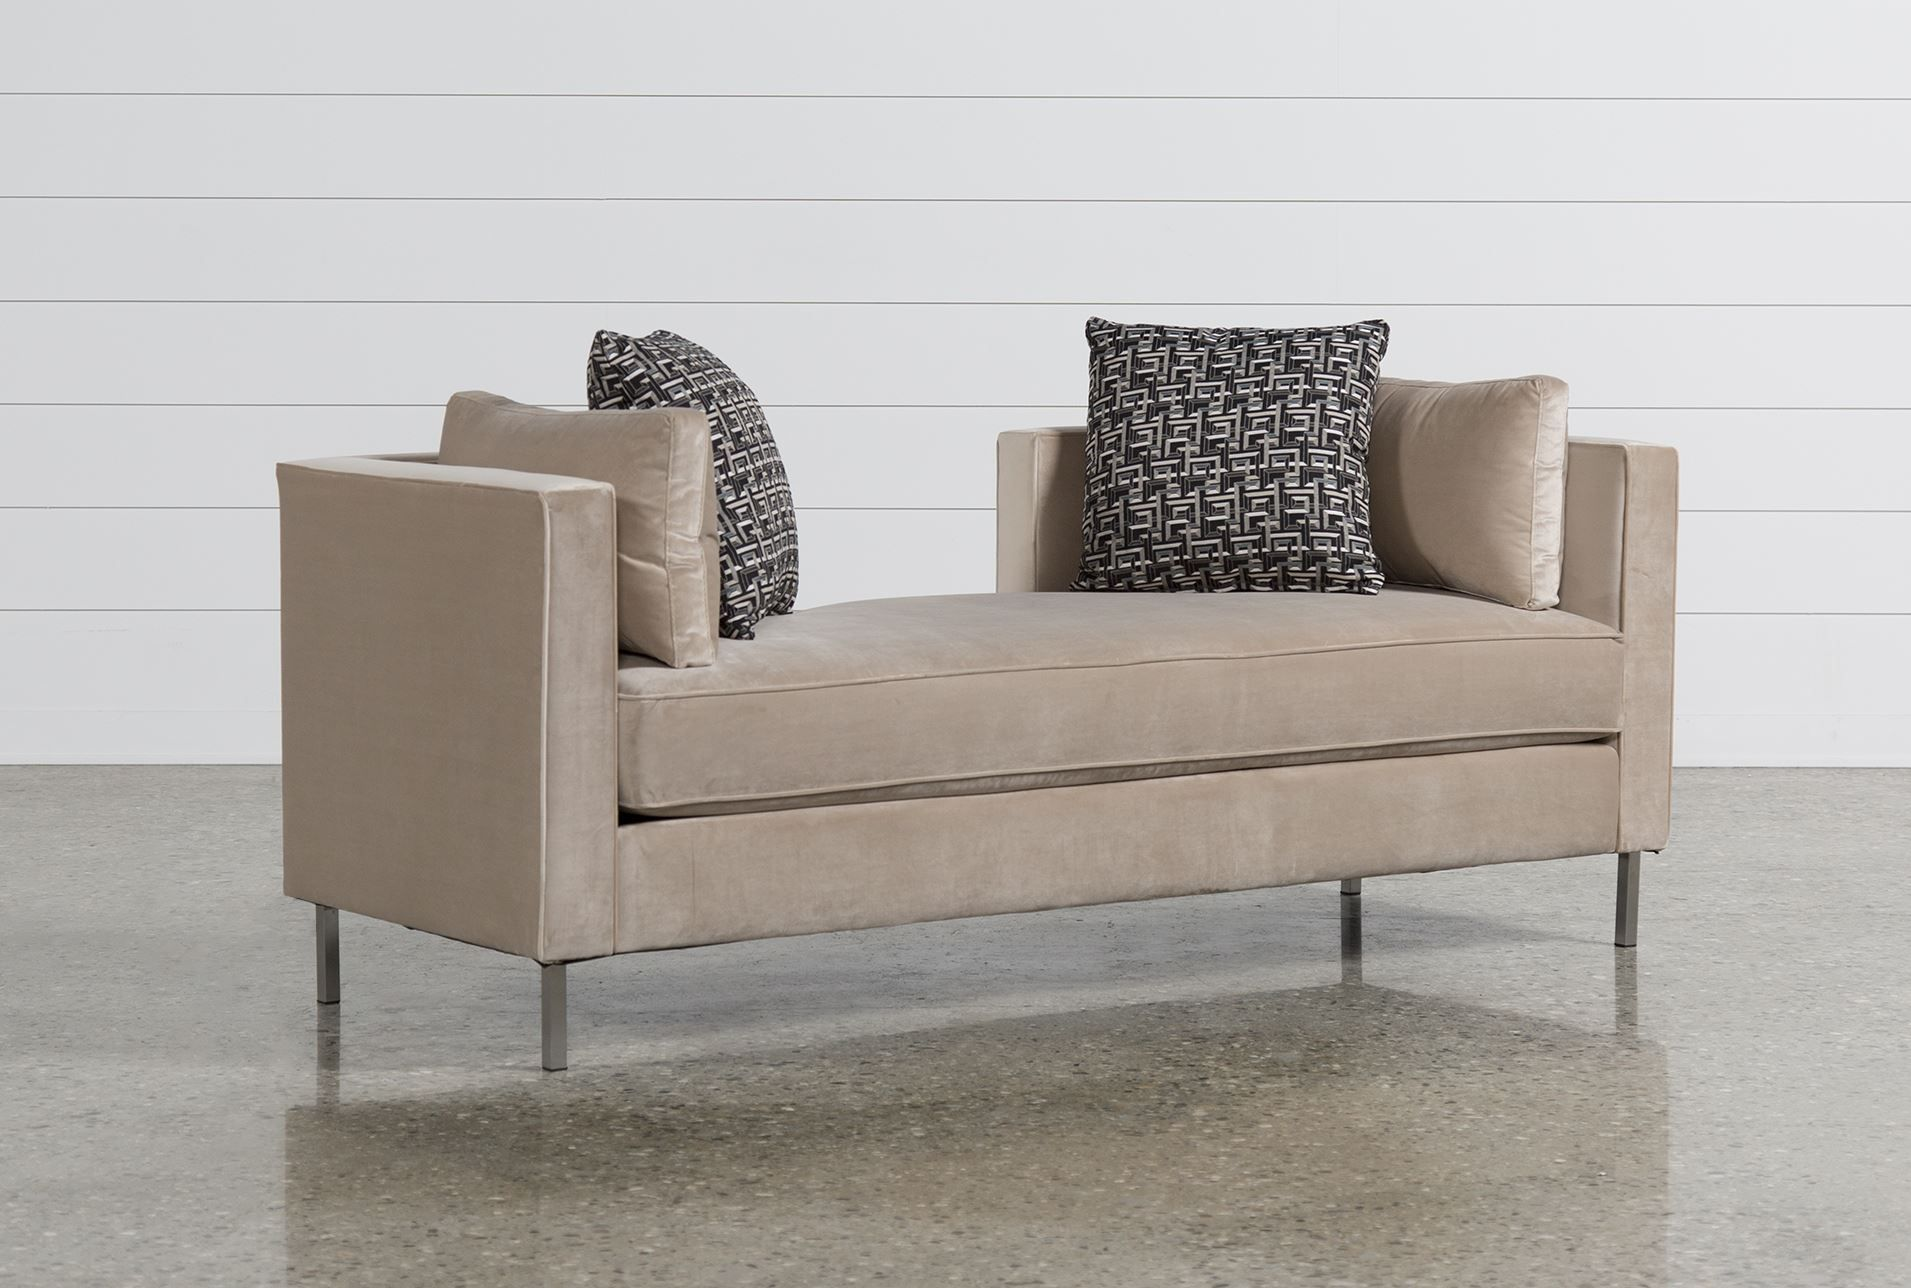 Hartwell Daybed - Living Spaces 750 | Daybed, Outdoor sofa ... on Living Spaces Outdoor Daybed id=12815